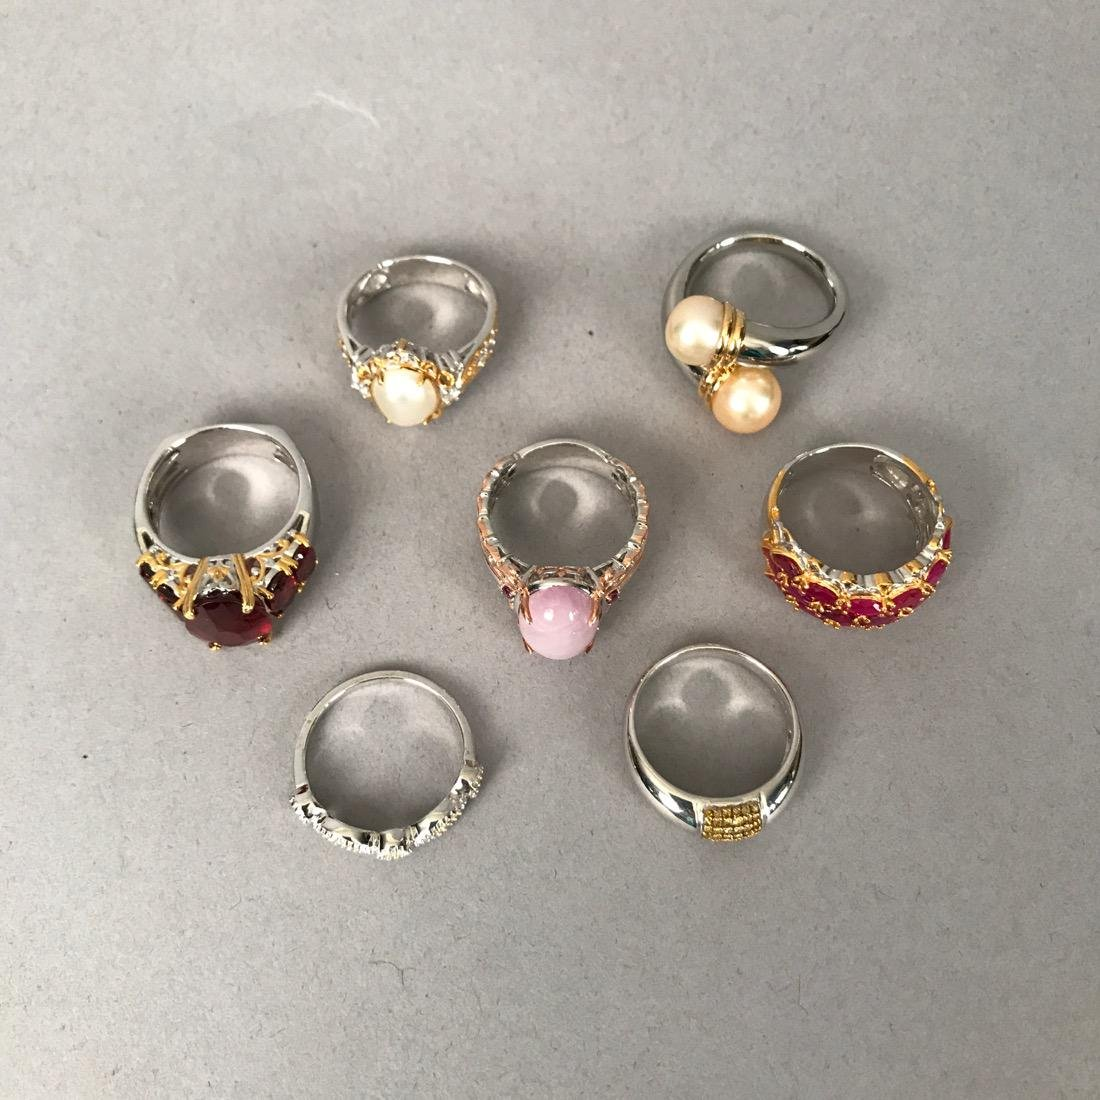 7 Sterling Silver Rings with Gold Accents - 2